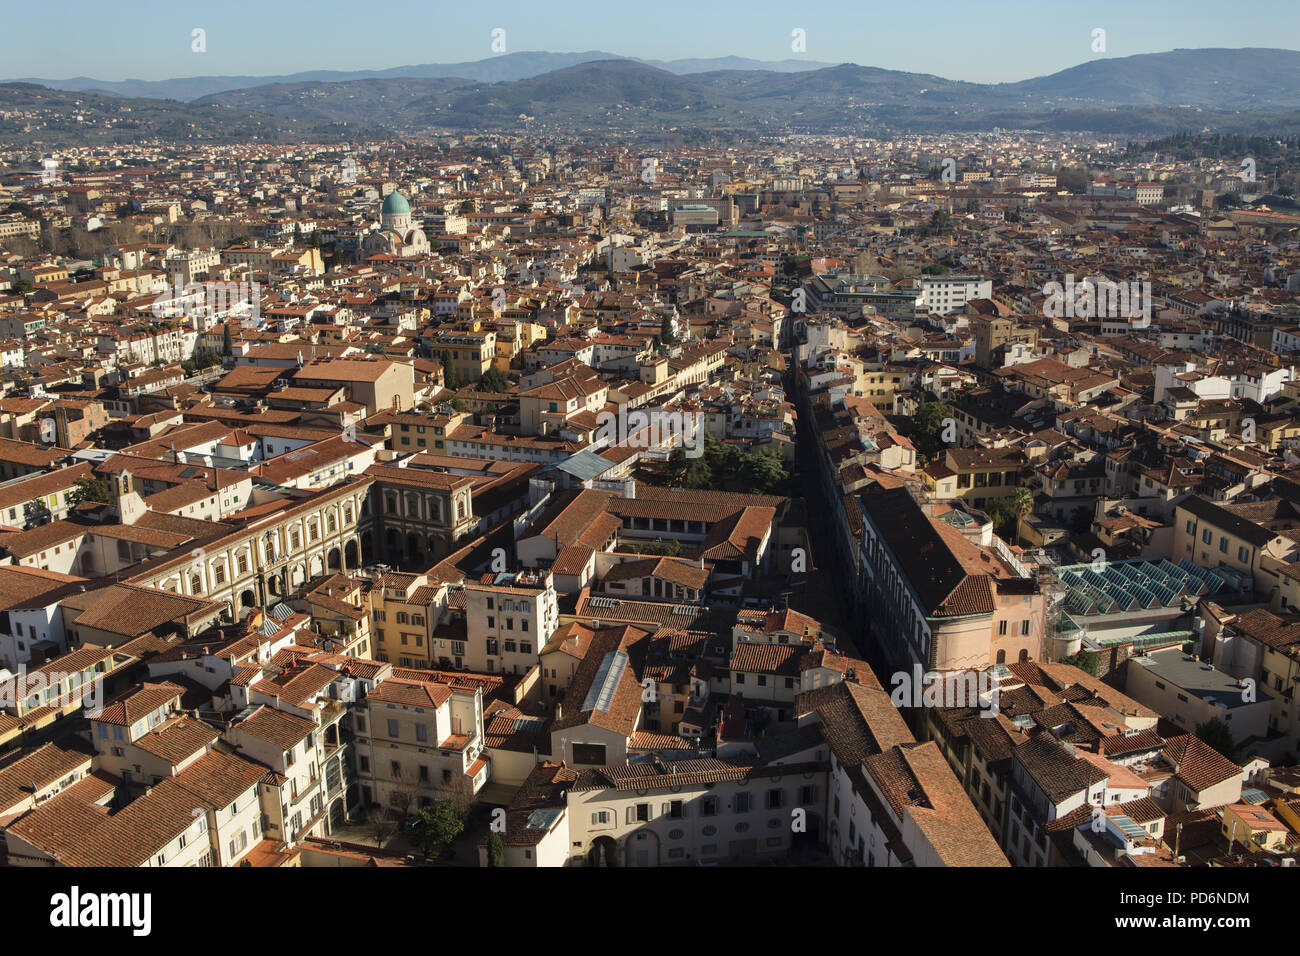 Great Synagogue of Florence also known as the Tempio Maggiore rising over the tiled roofs of the Florence downtown pictured from the dome of the Florence Cathedral (Duomo di Firenze) in Florence, Tuscany, Italy. Stock Photo